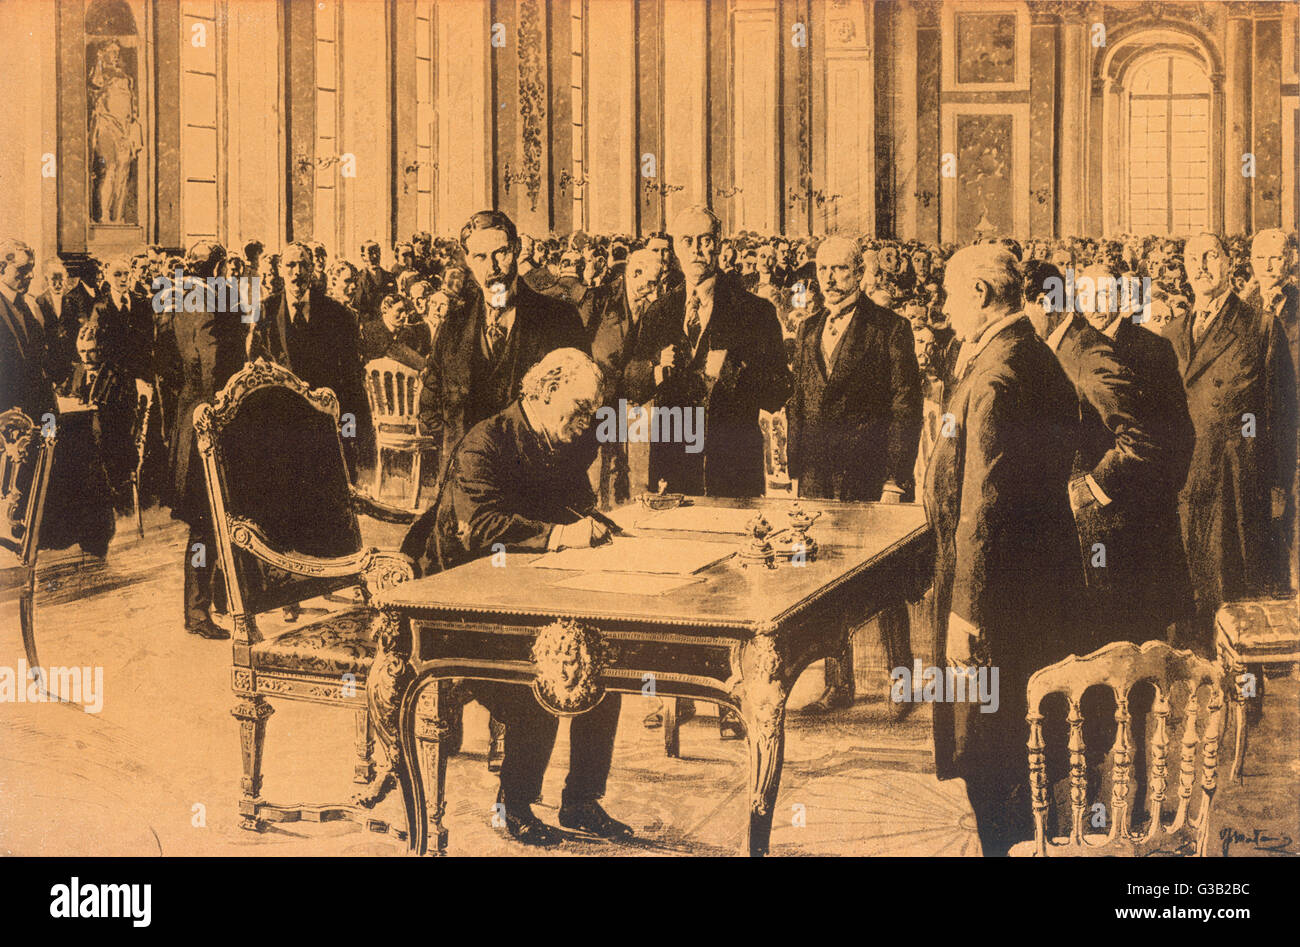 The treaty is signed         Date: 28 June 1919 - Stock Image